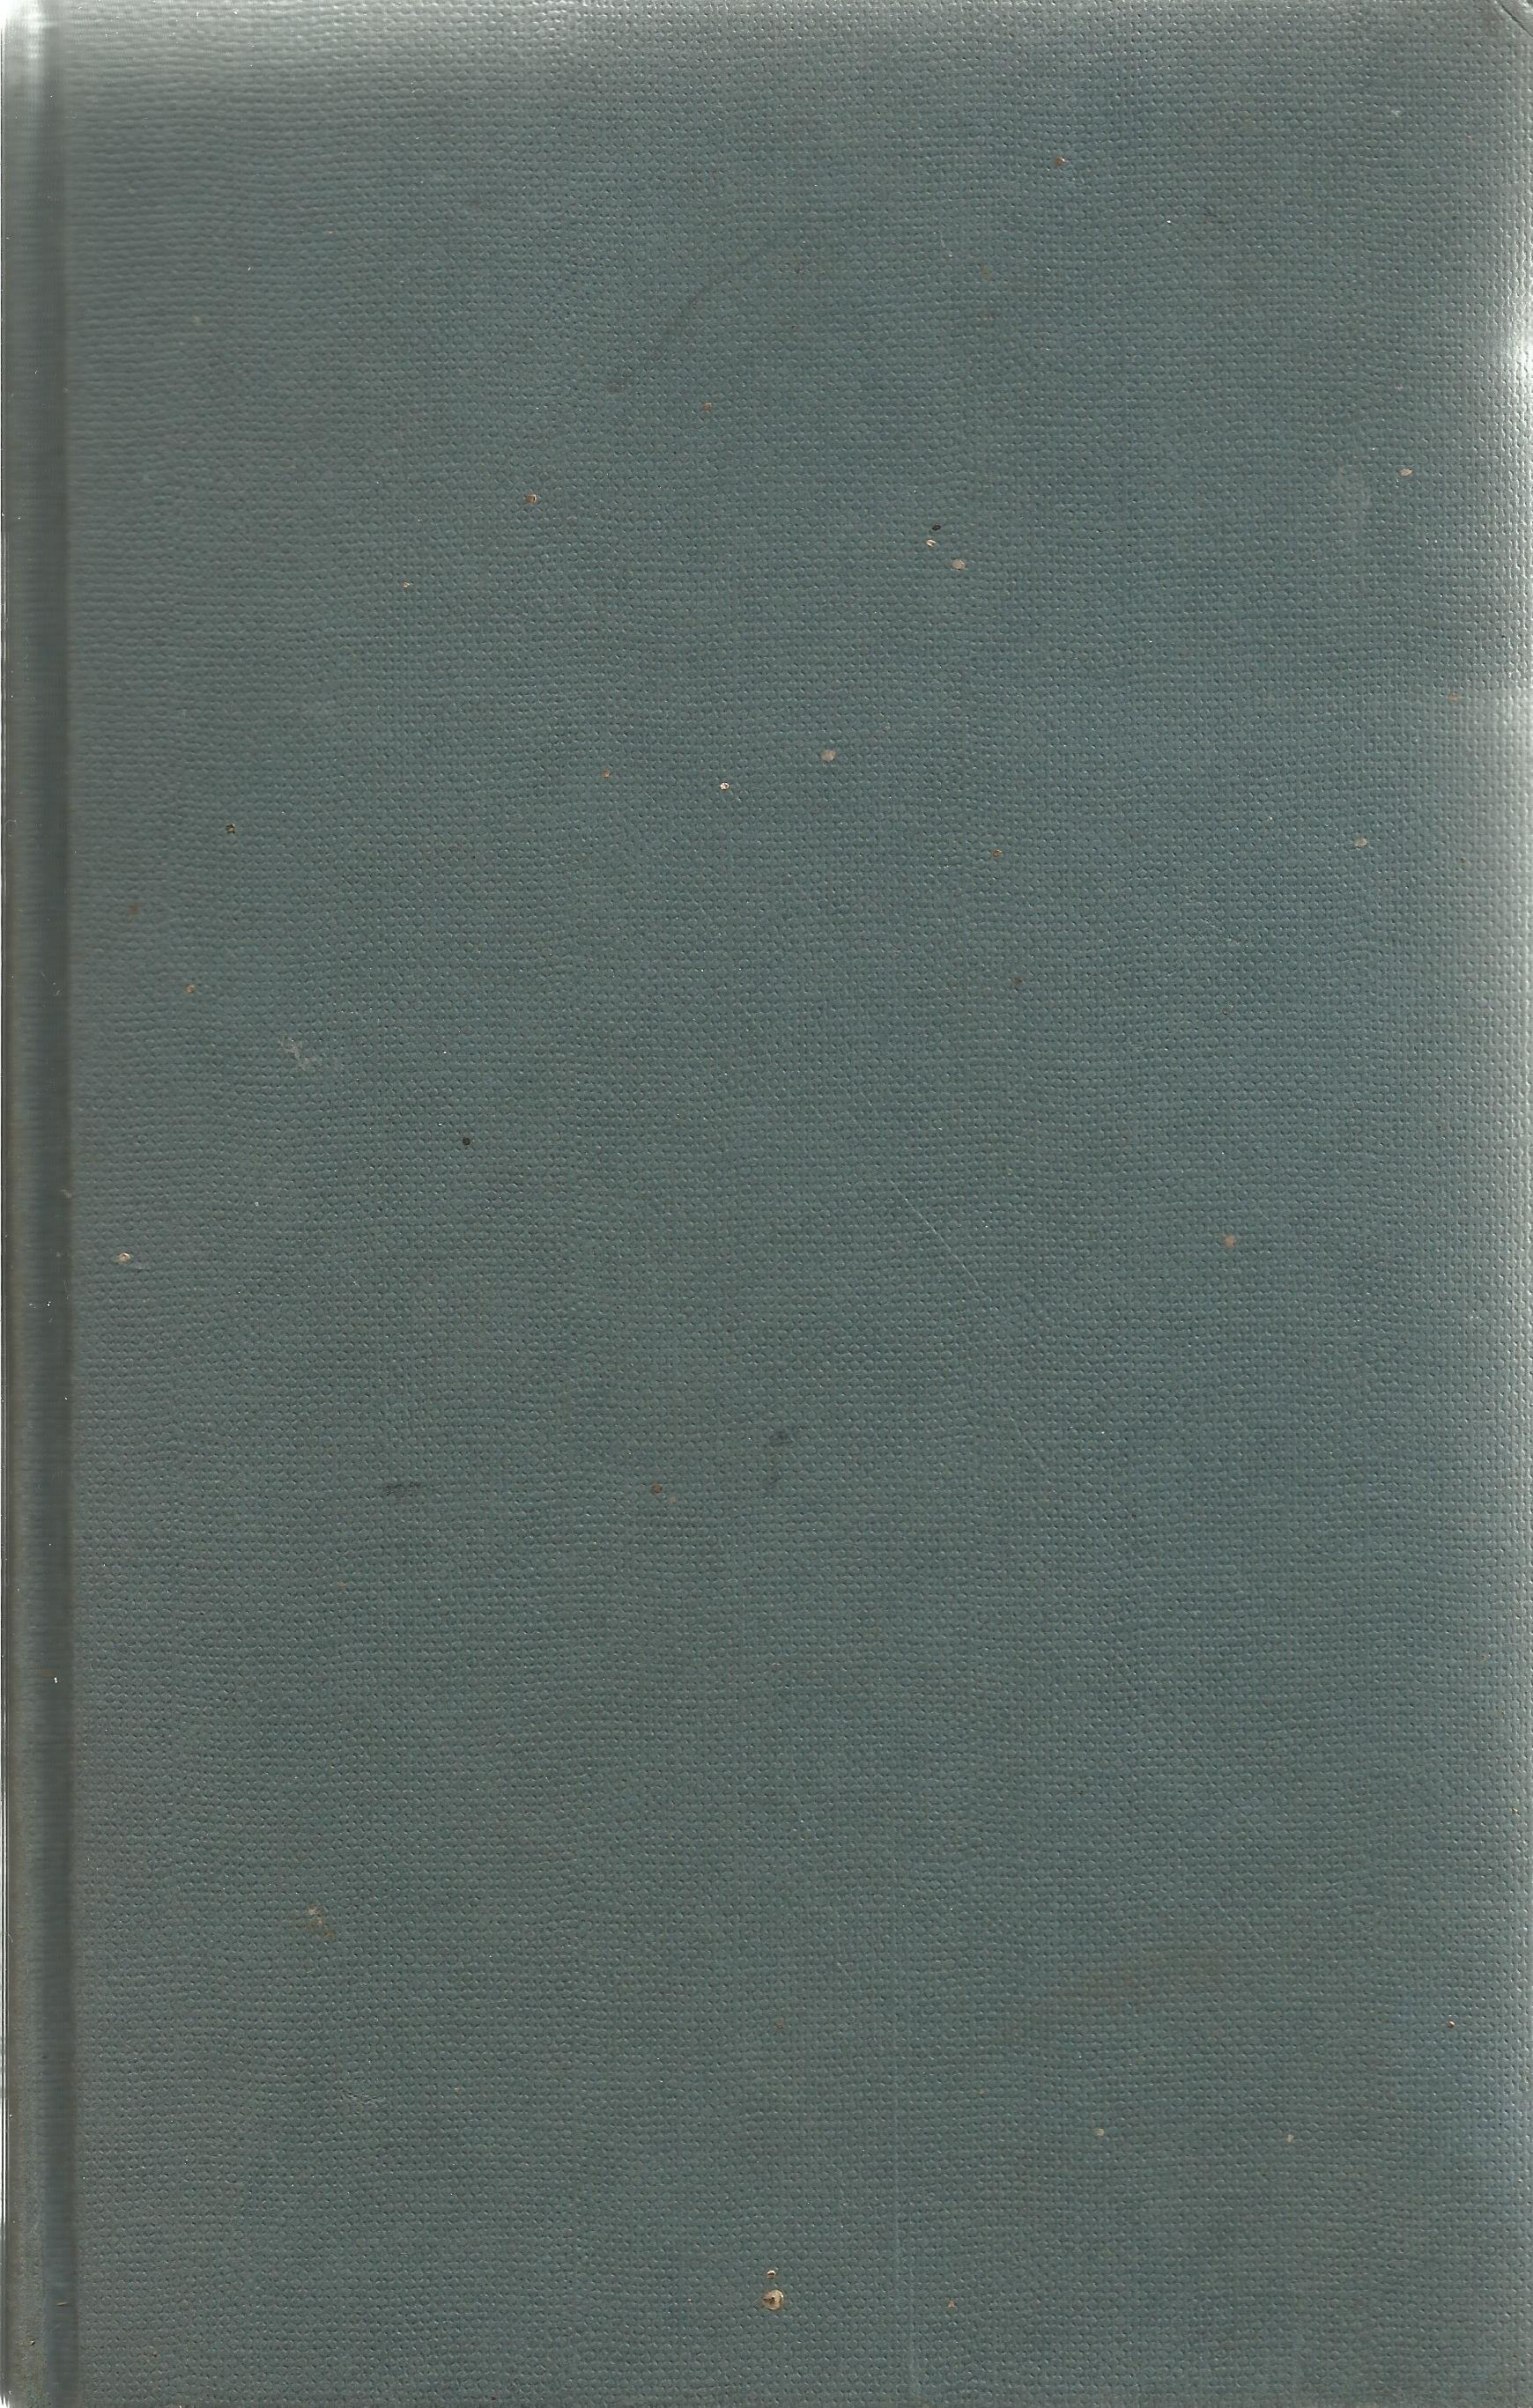 William Douglas Home Signed hardback book Mr Home pronounced Hume An Autobiography 1979 First